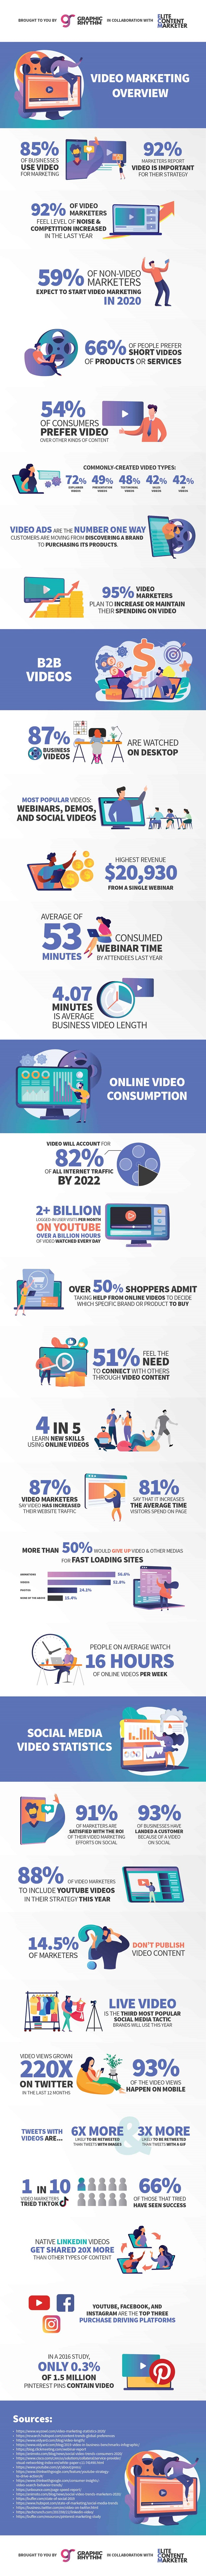 Video marketing statistics infographic